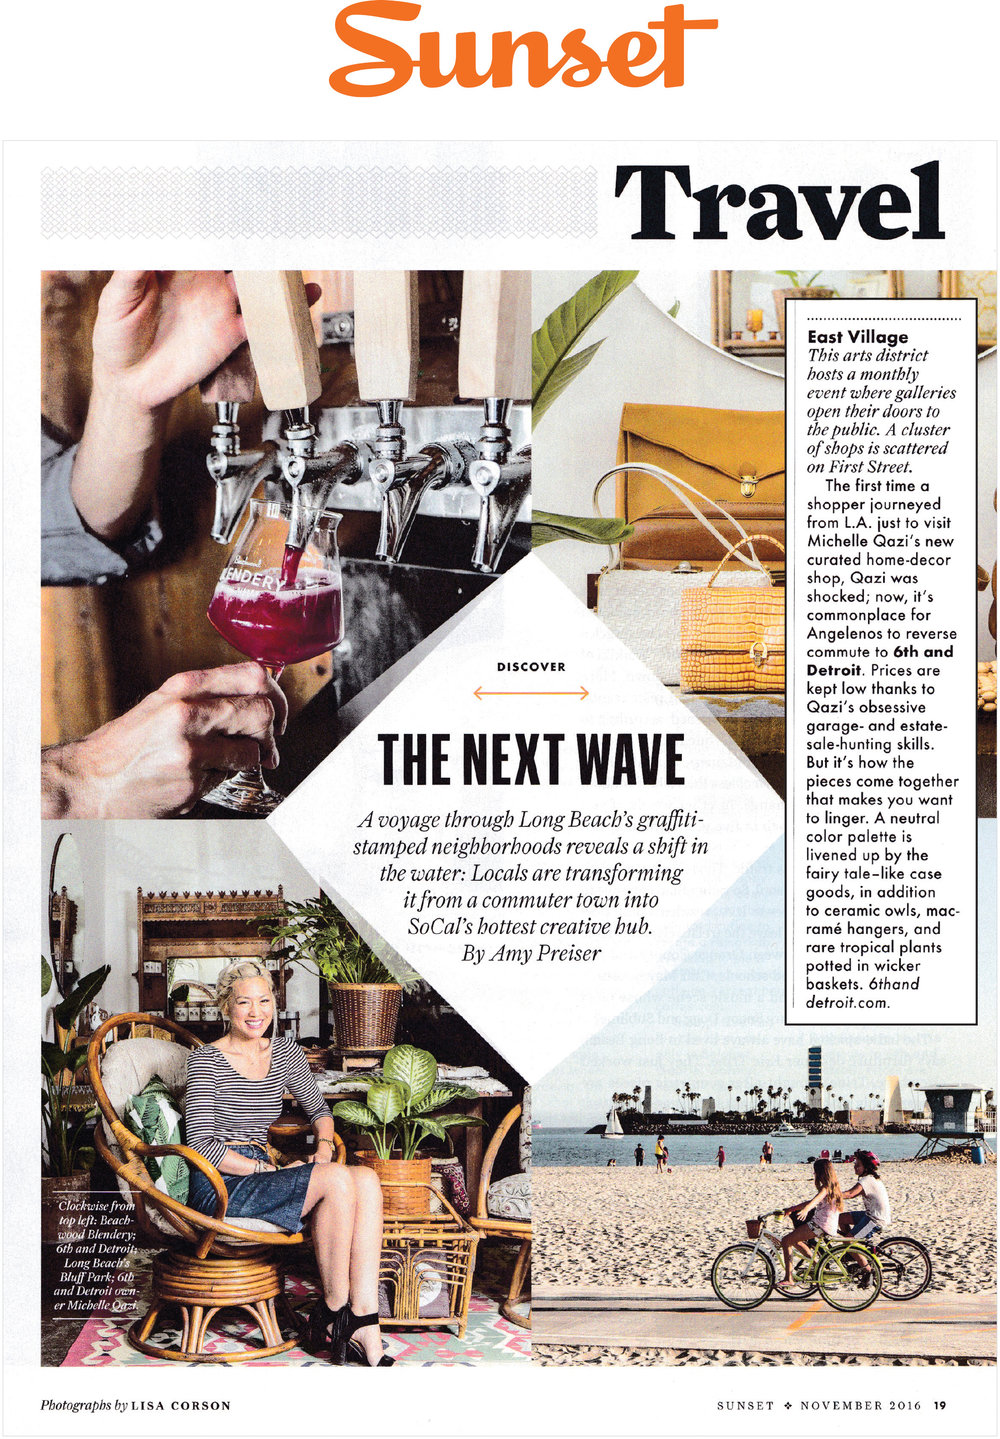 6th And Detroit and it's owner, Michelle Qazi, get featured in  Sunset Magazine  highlighting the new growth and character of Long Beach.